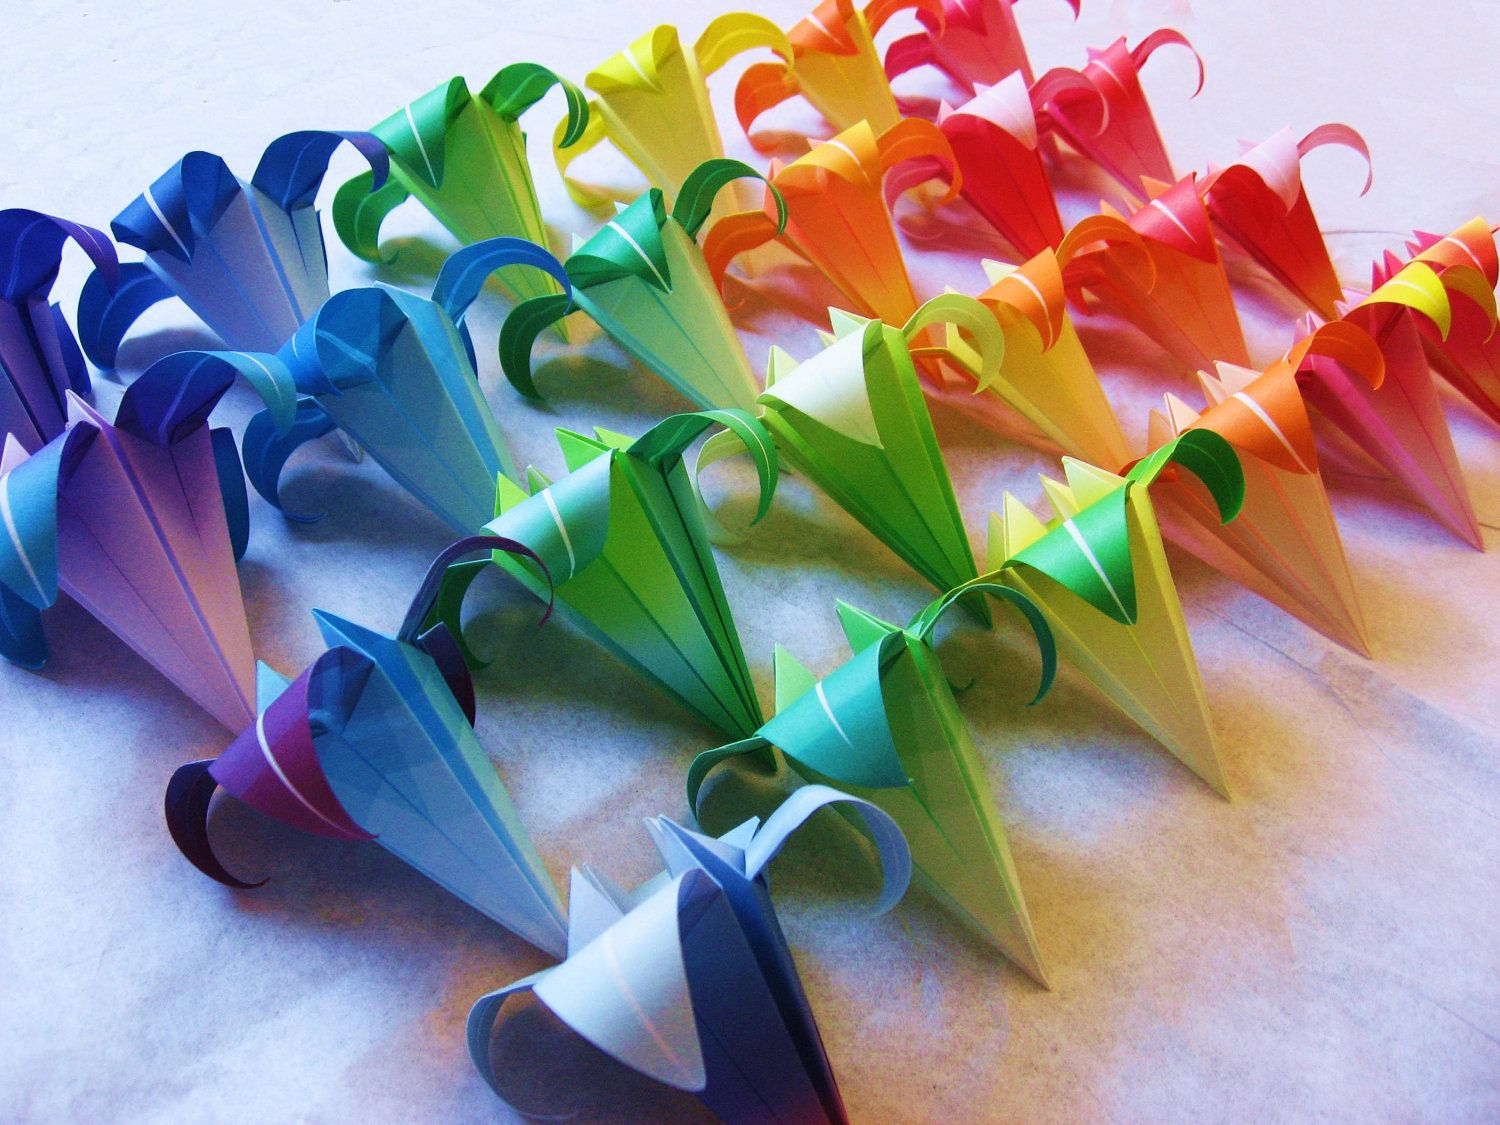 25 large origami irises paper flowers made to order with rainbow 24 large origami irises paper flowers made to order with rainbow paper great for gifts wedding or party favors and table decorations mightylinksfo